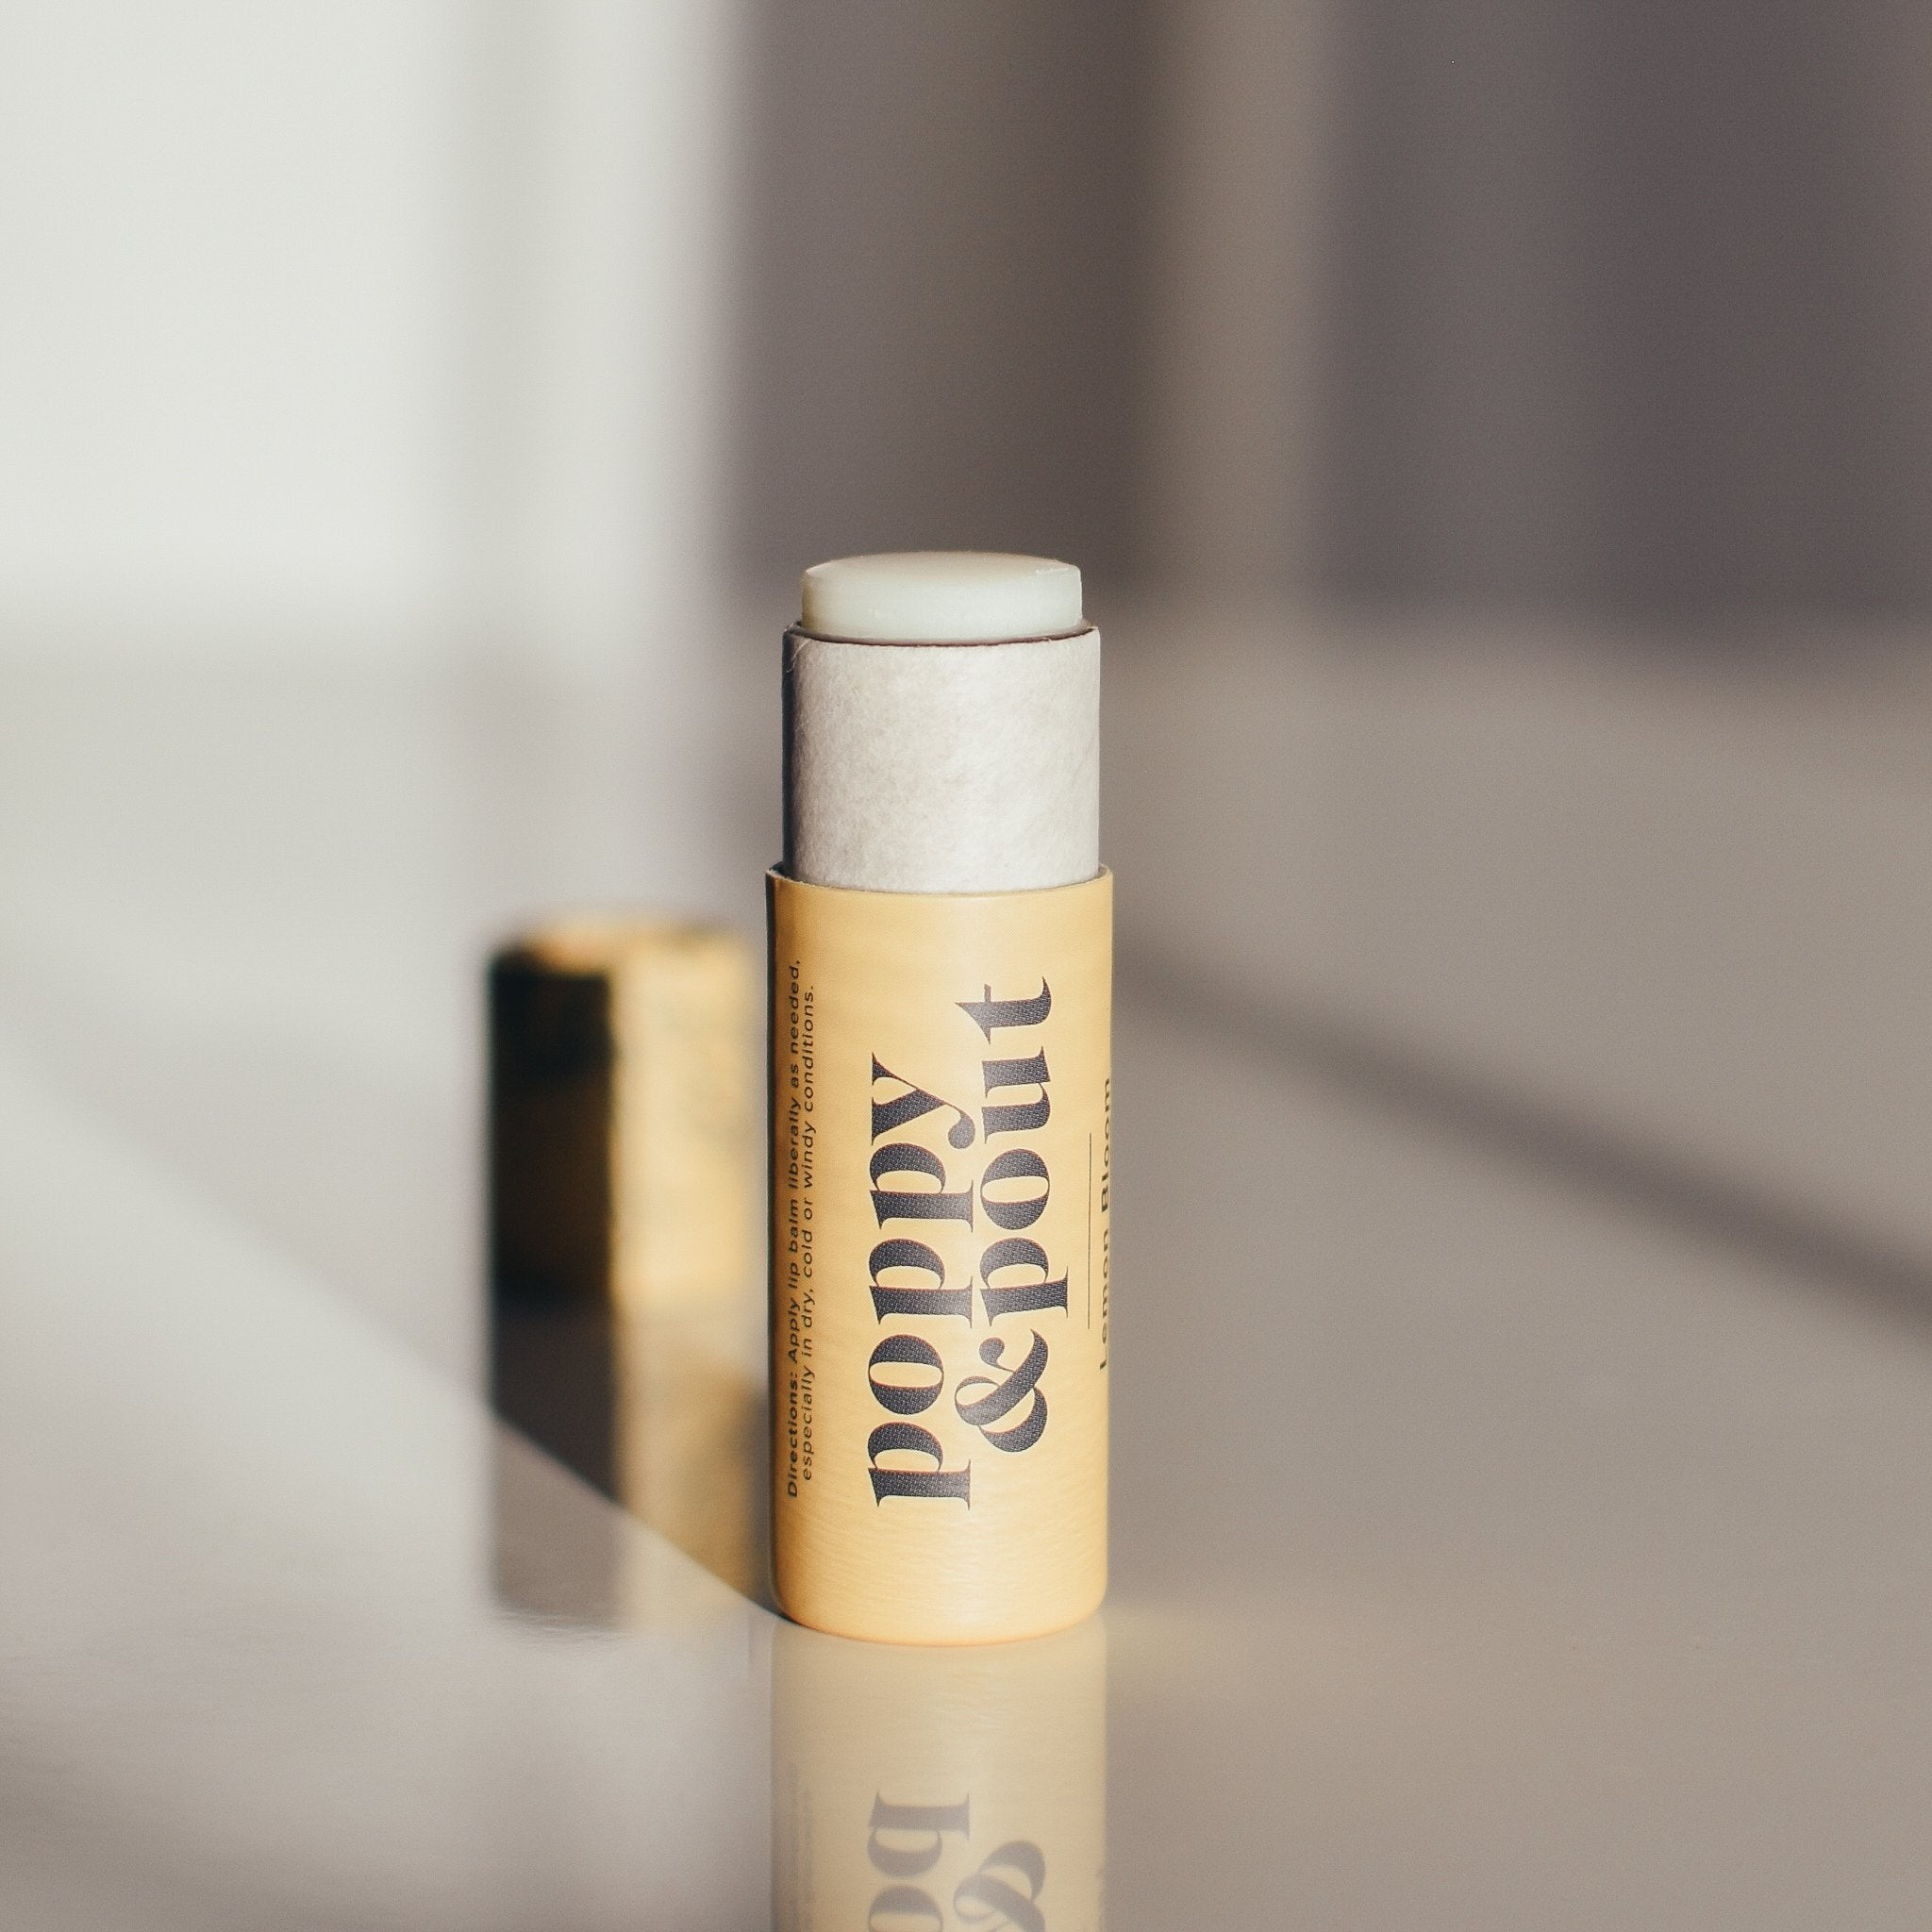 POPPY & POUT - LEMON BLOOM LIP BALM